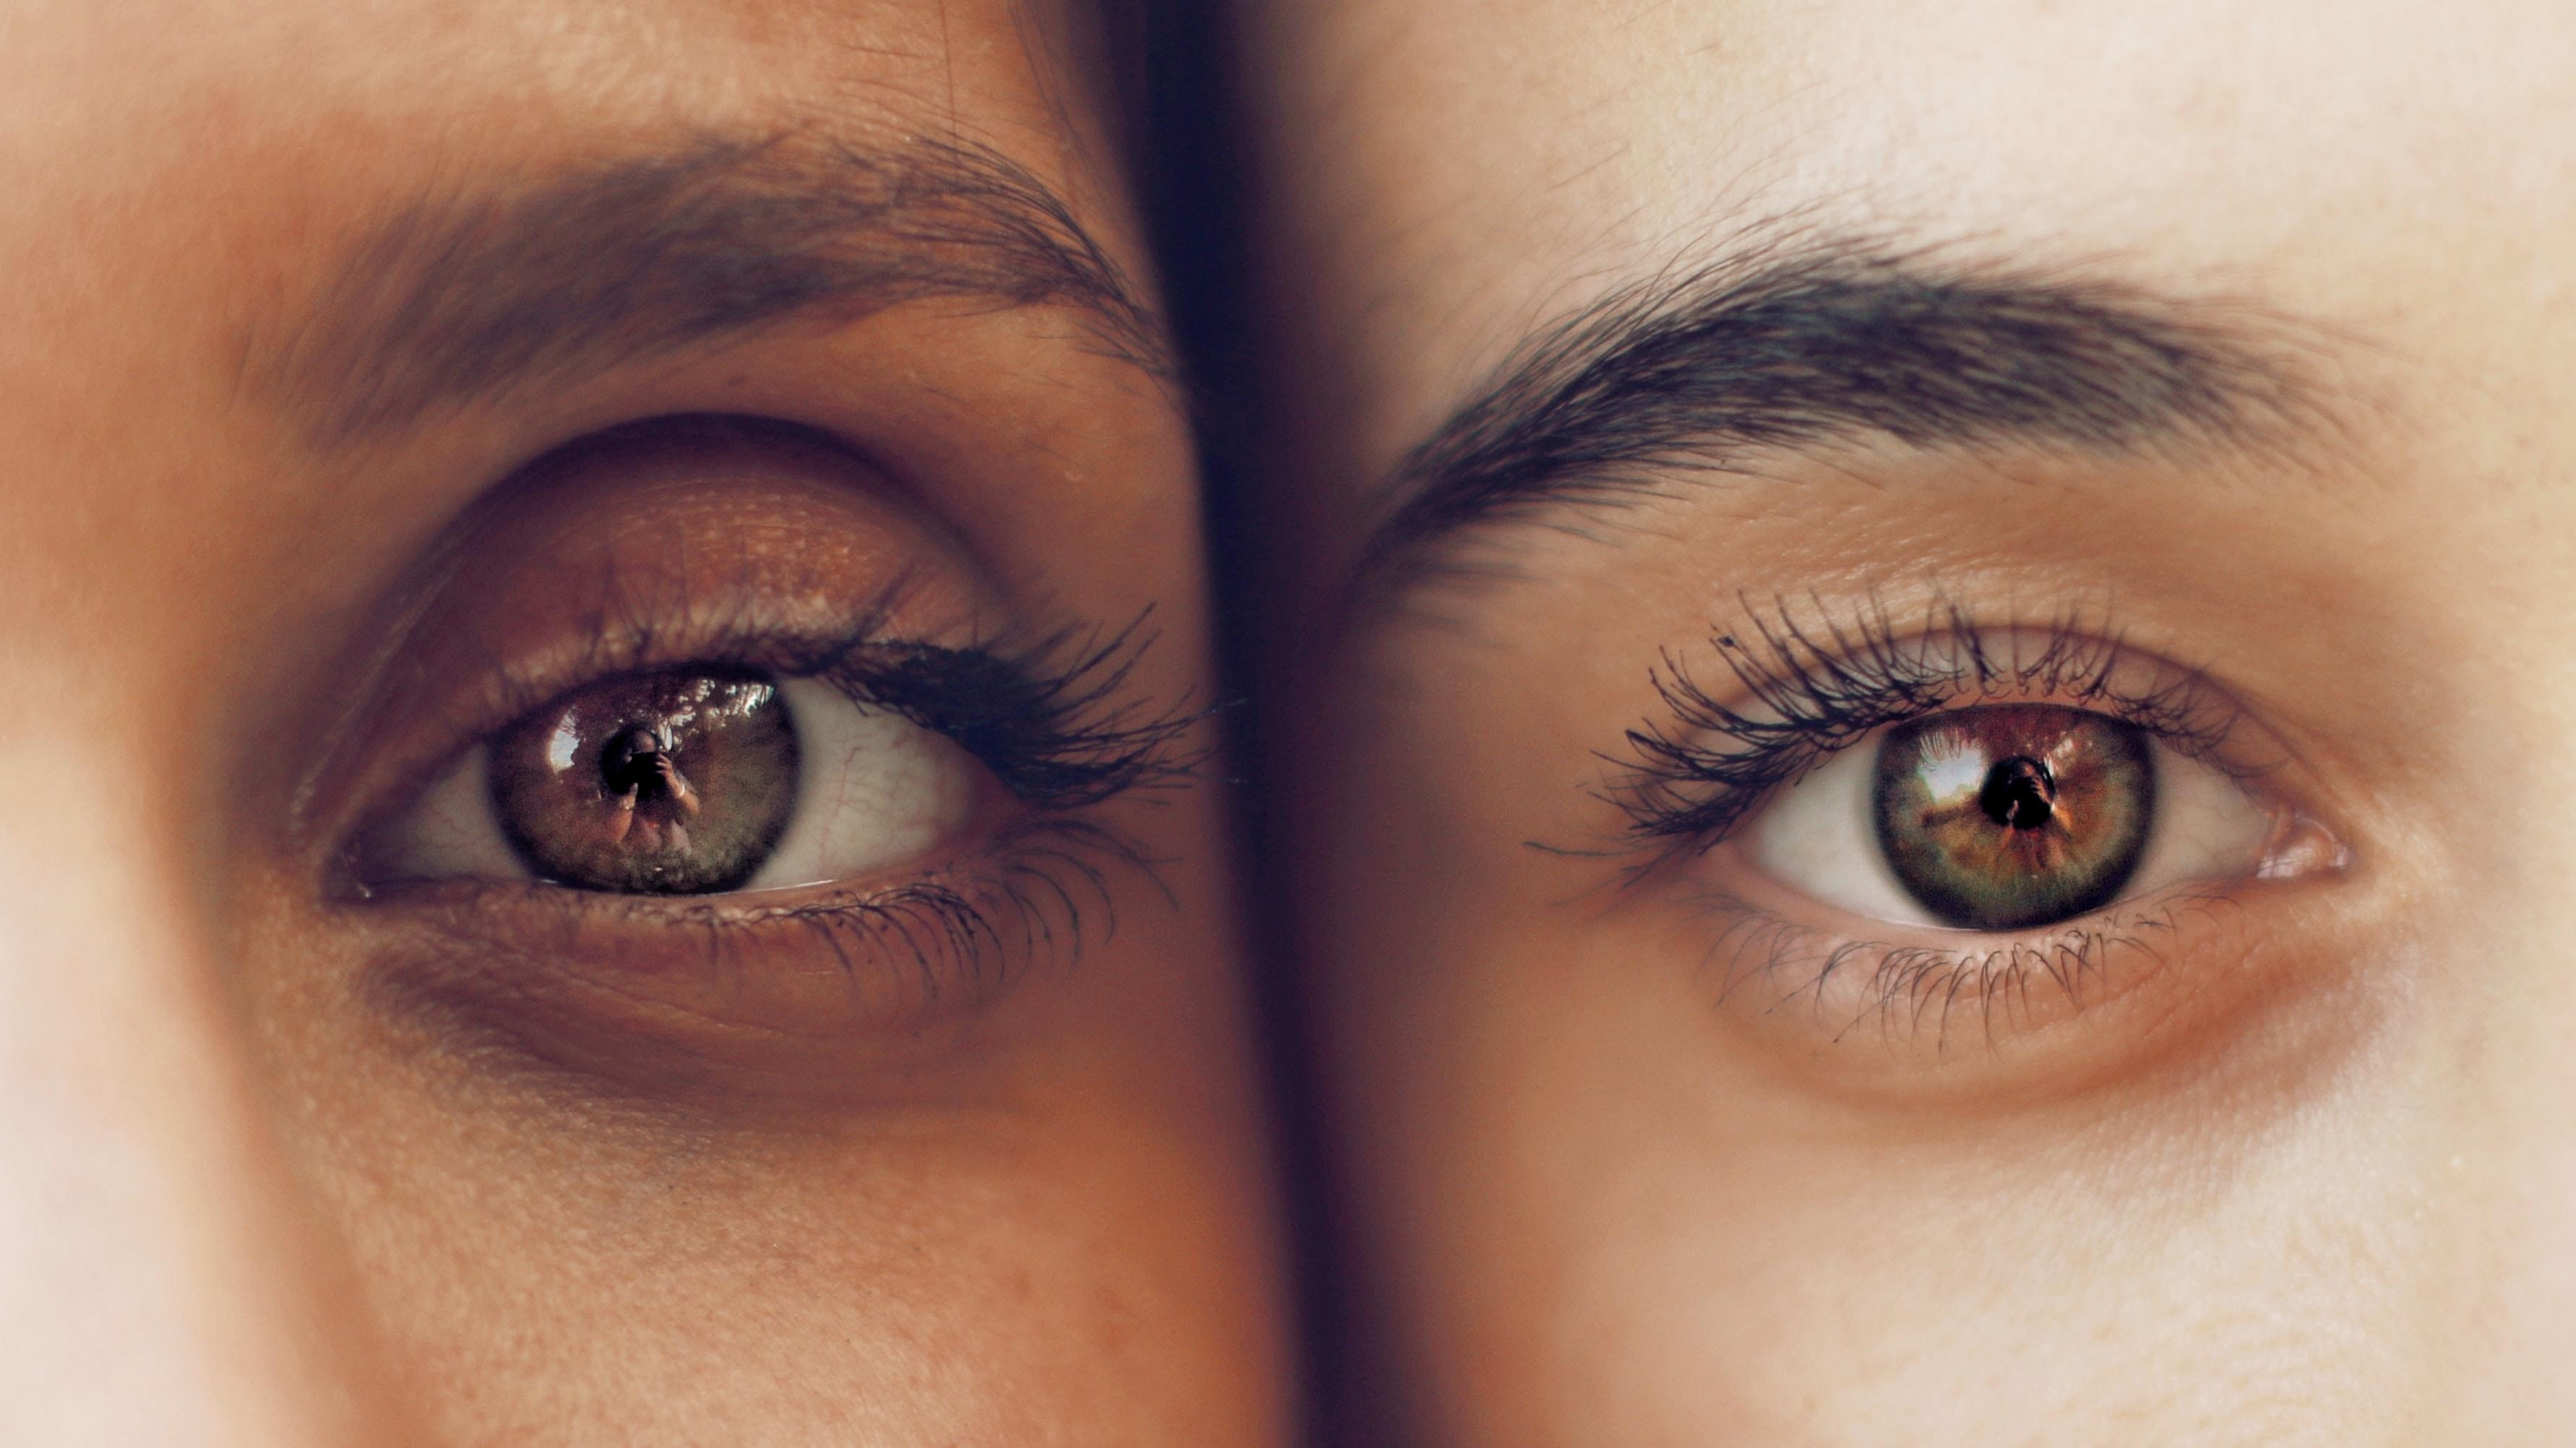 Eye Care - How to Look After Your Eye Contour Area